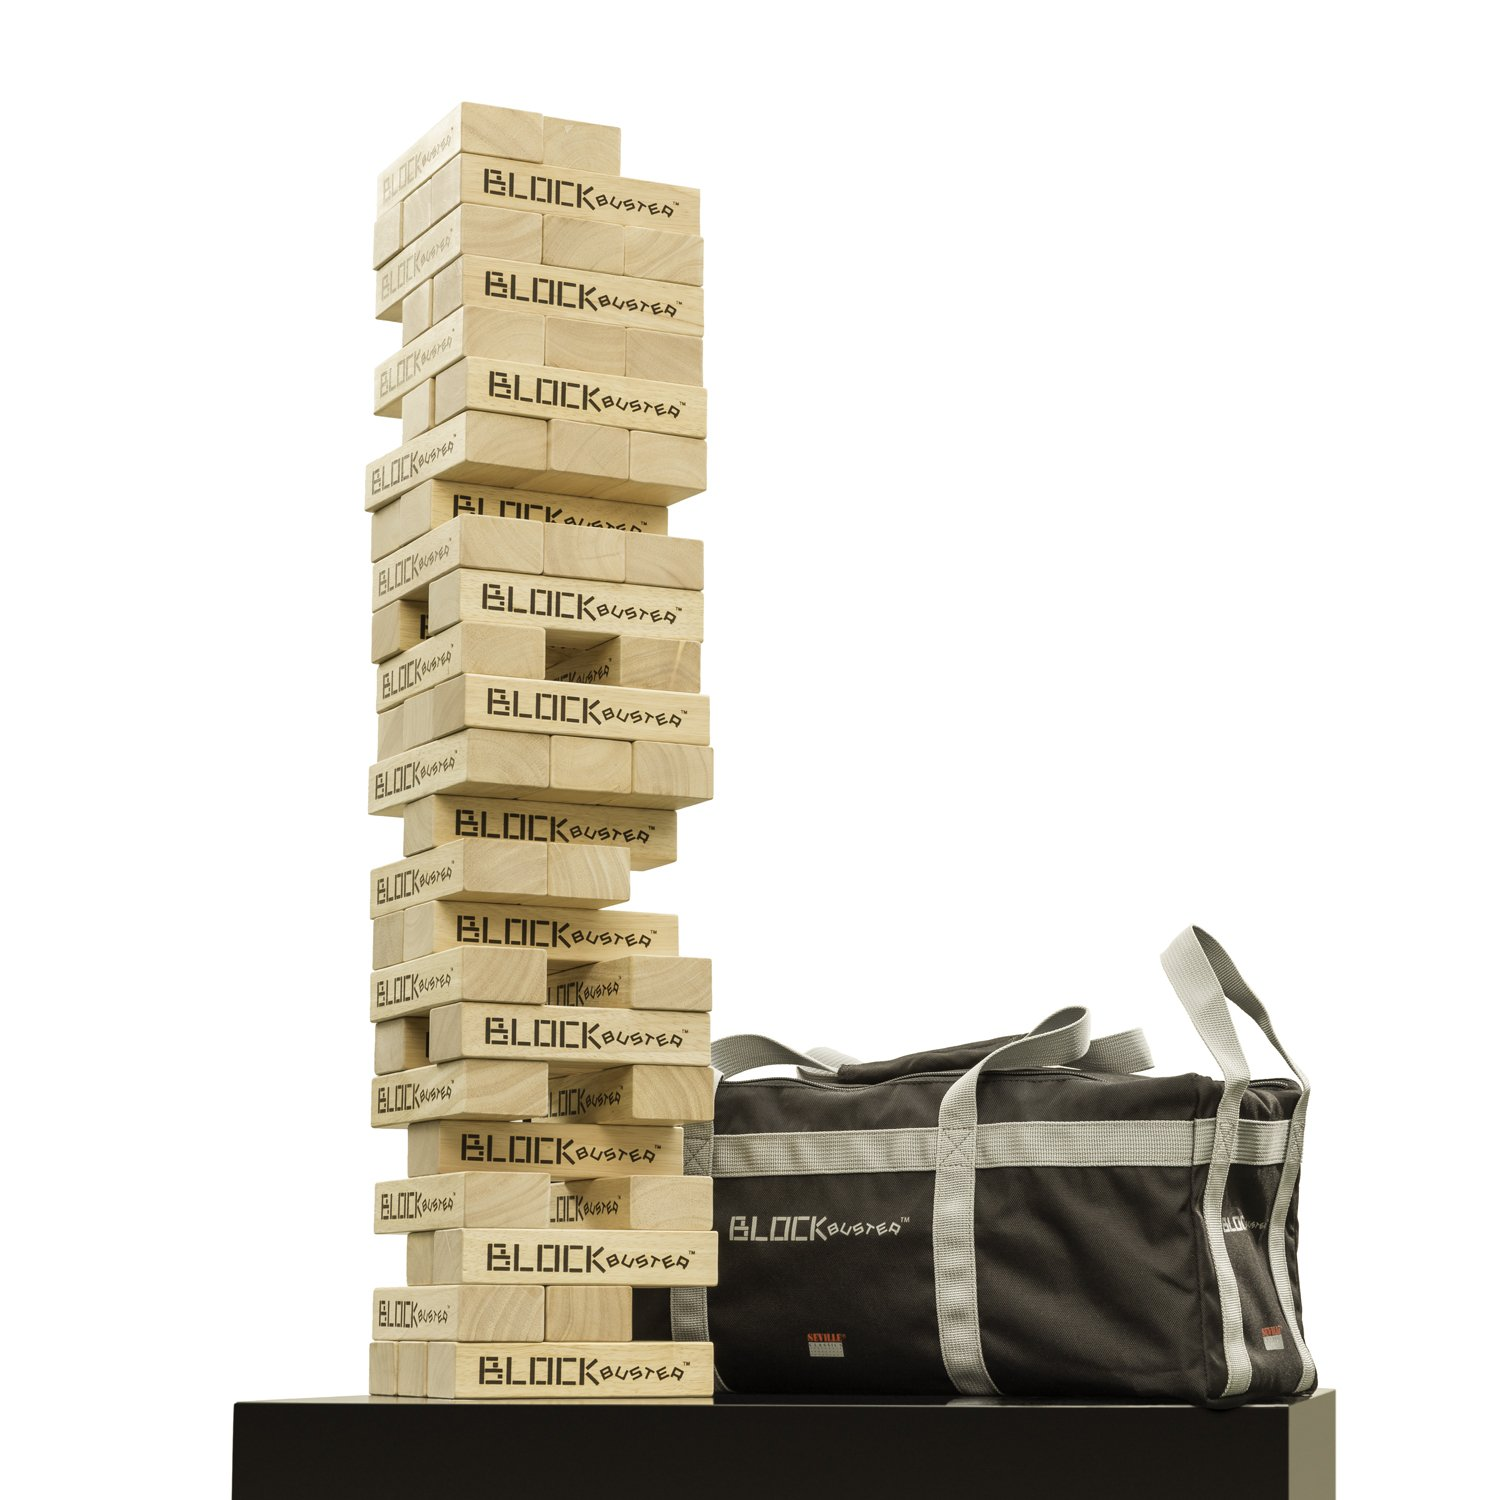 Seville Classics Premium Giant Block Tower Game/w Heavy-Duty Storage Bag (Stacks to 4+ ft.)